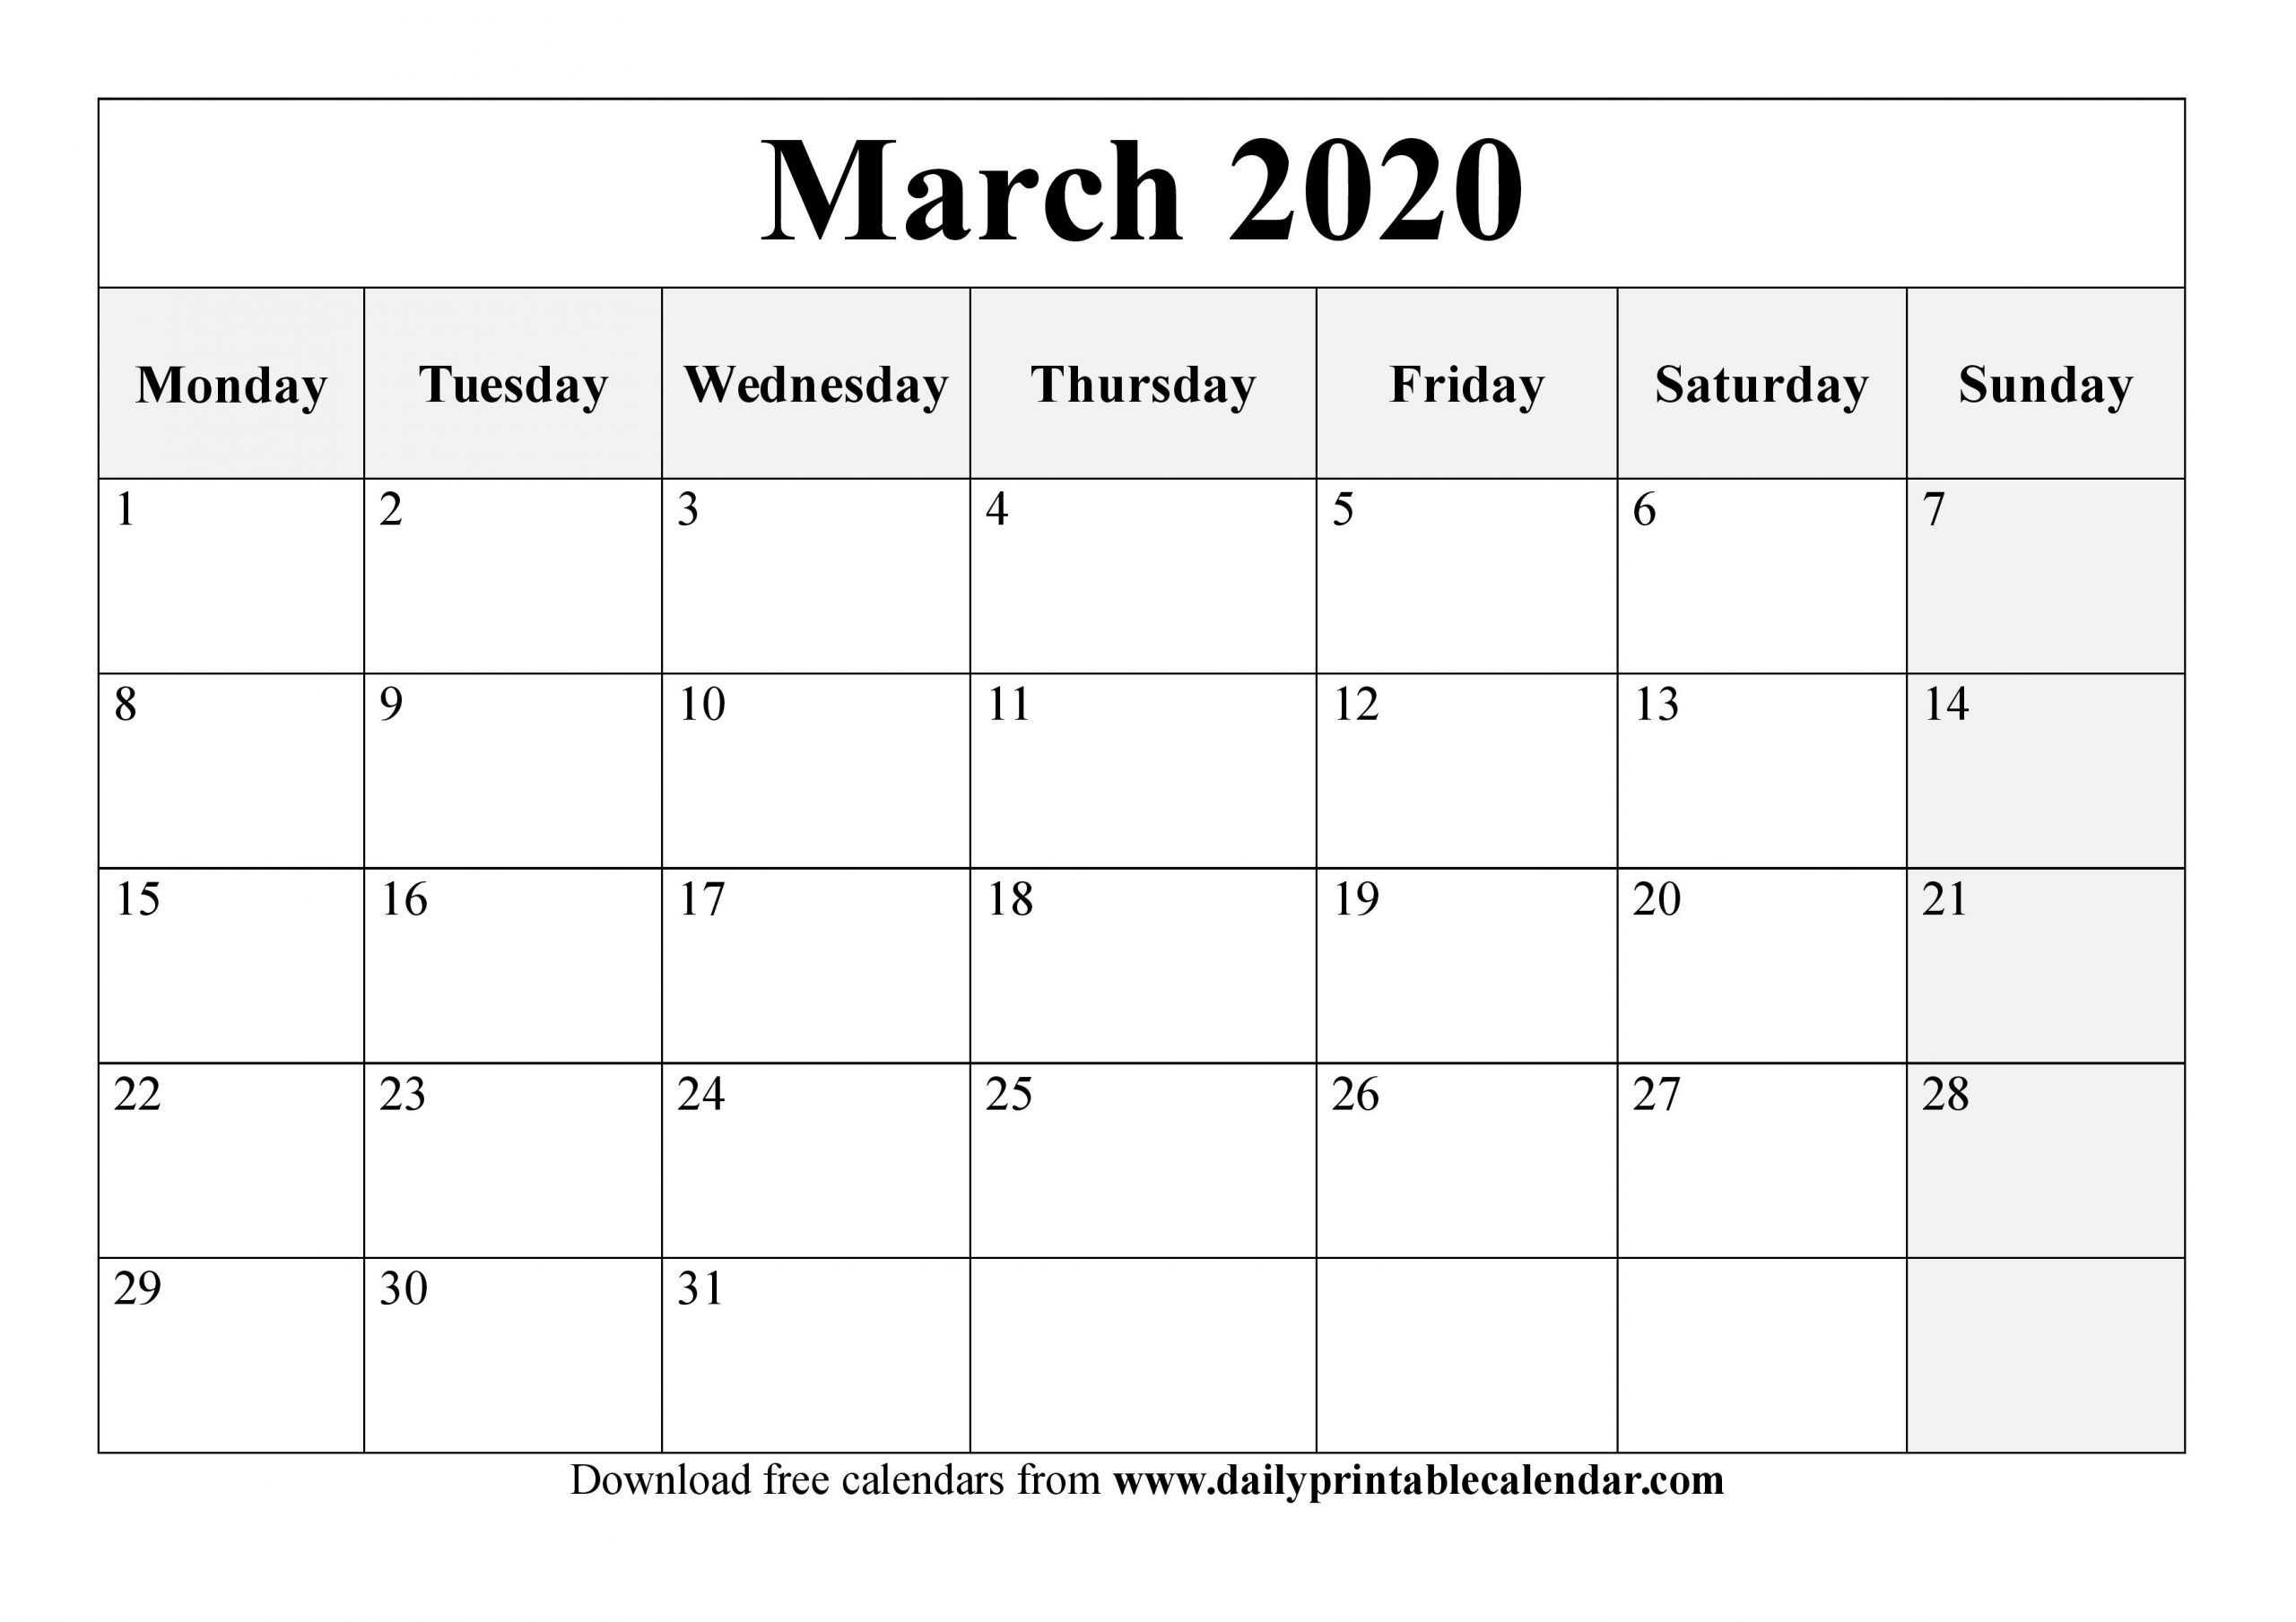 March 2020 Calendar Printable - Blank Templates - 2020 Calendar